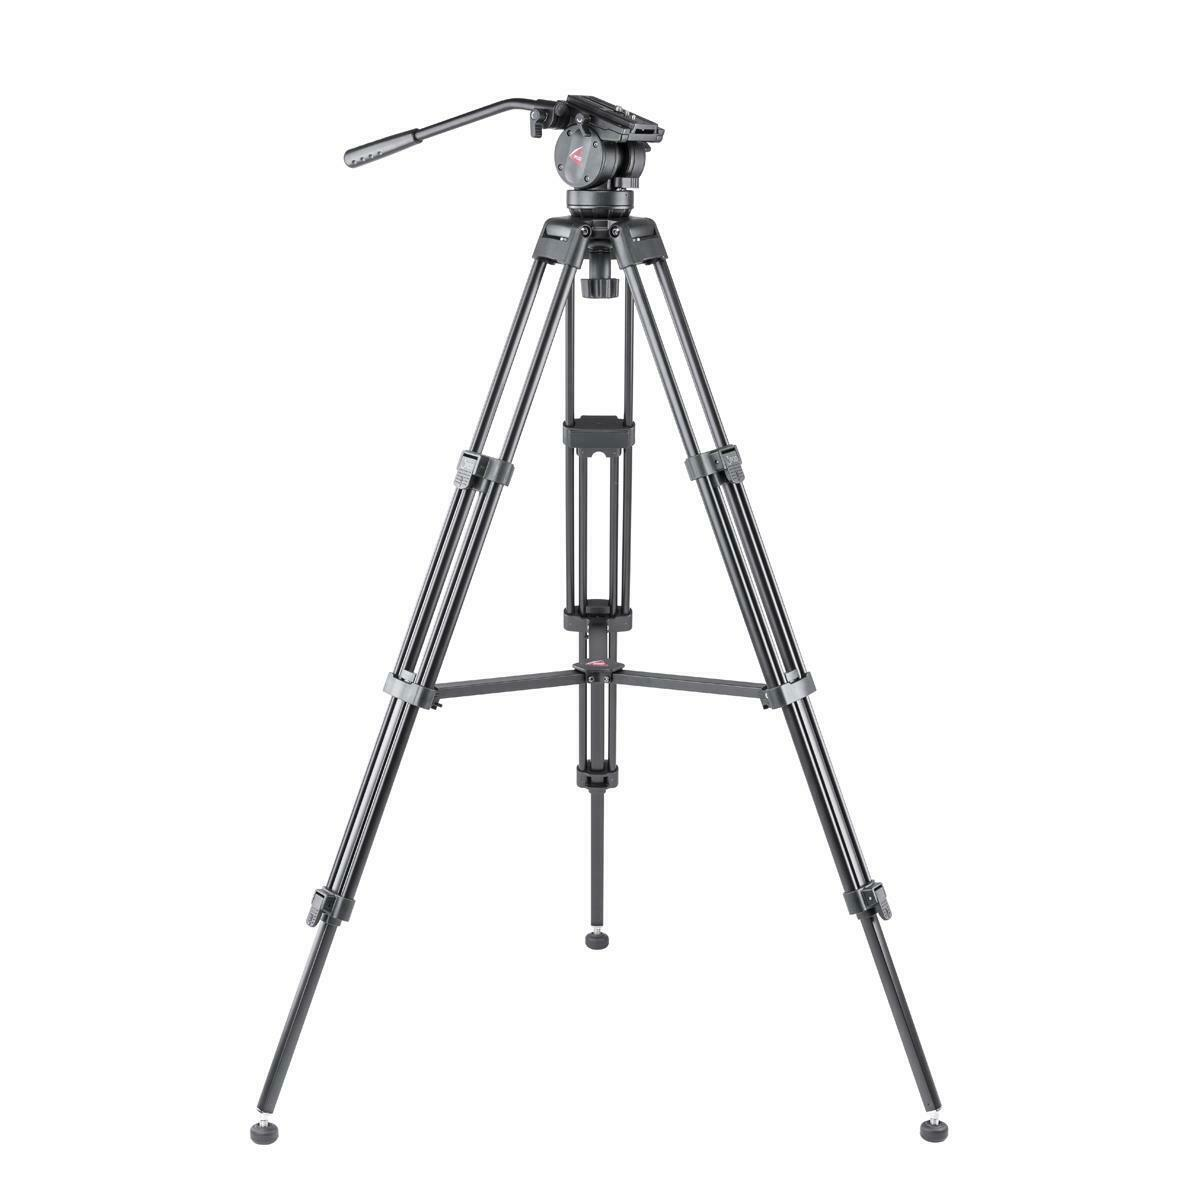 3pod V3ah Aluminum Tripod With Qr 2 Way Pan Head Black 3p Weifeng Portable Stand 4 Section Aluminium Legs Brace 1 Of 12only 0 Available